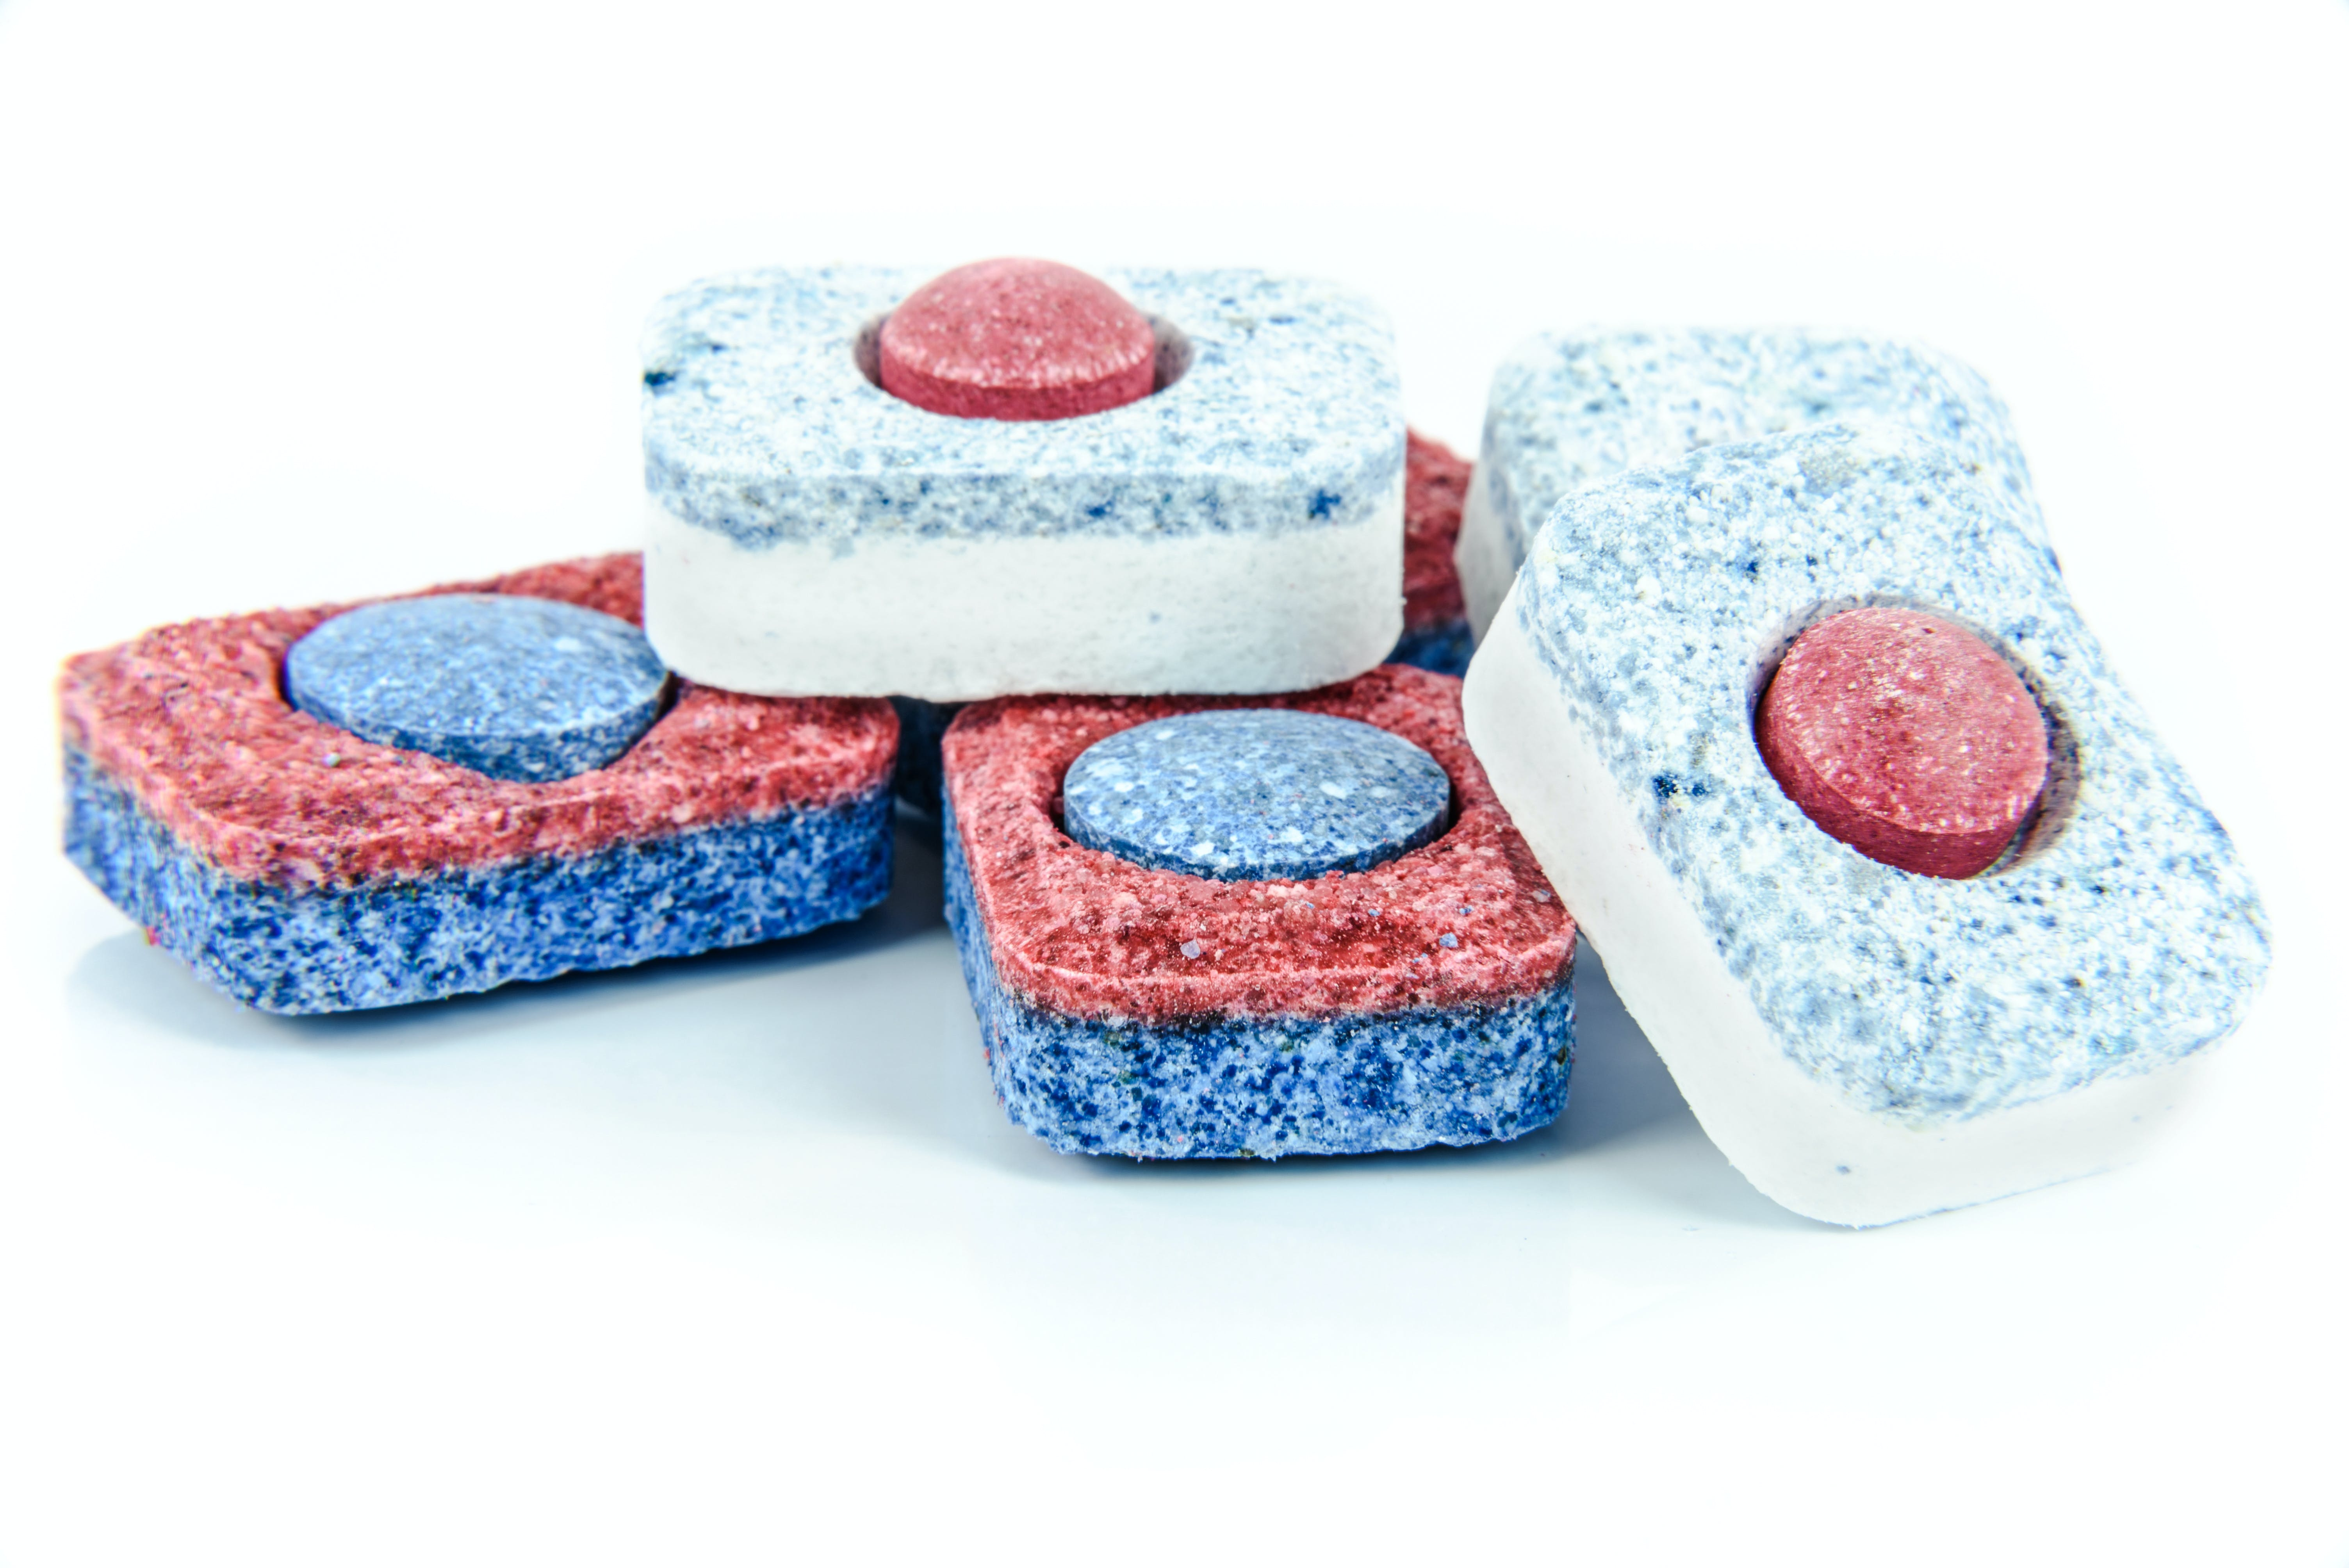 Assorted Soap Bars